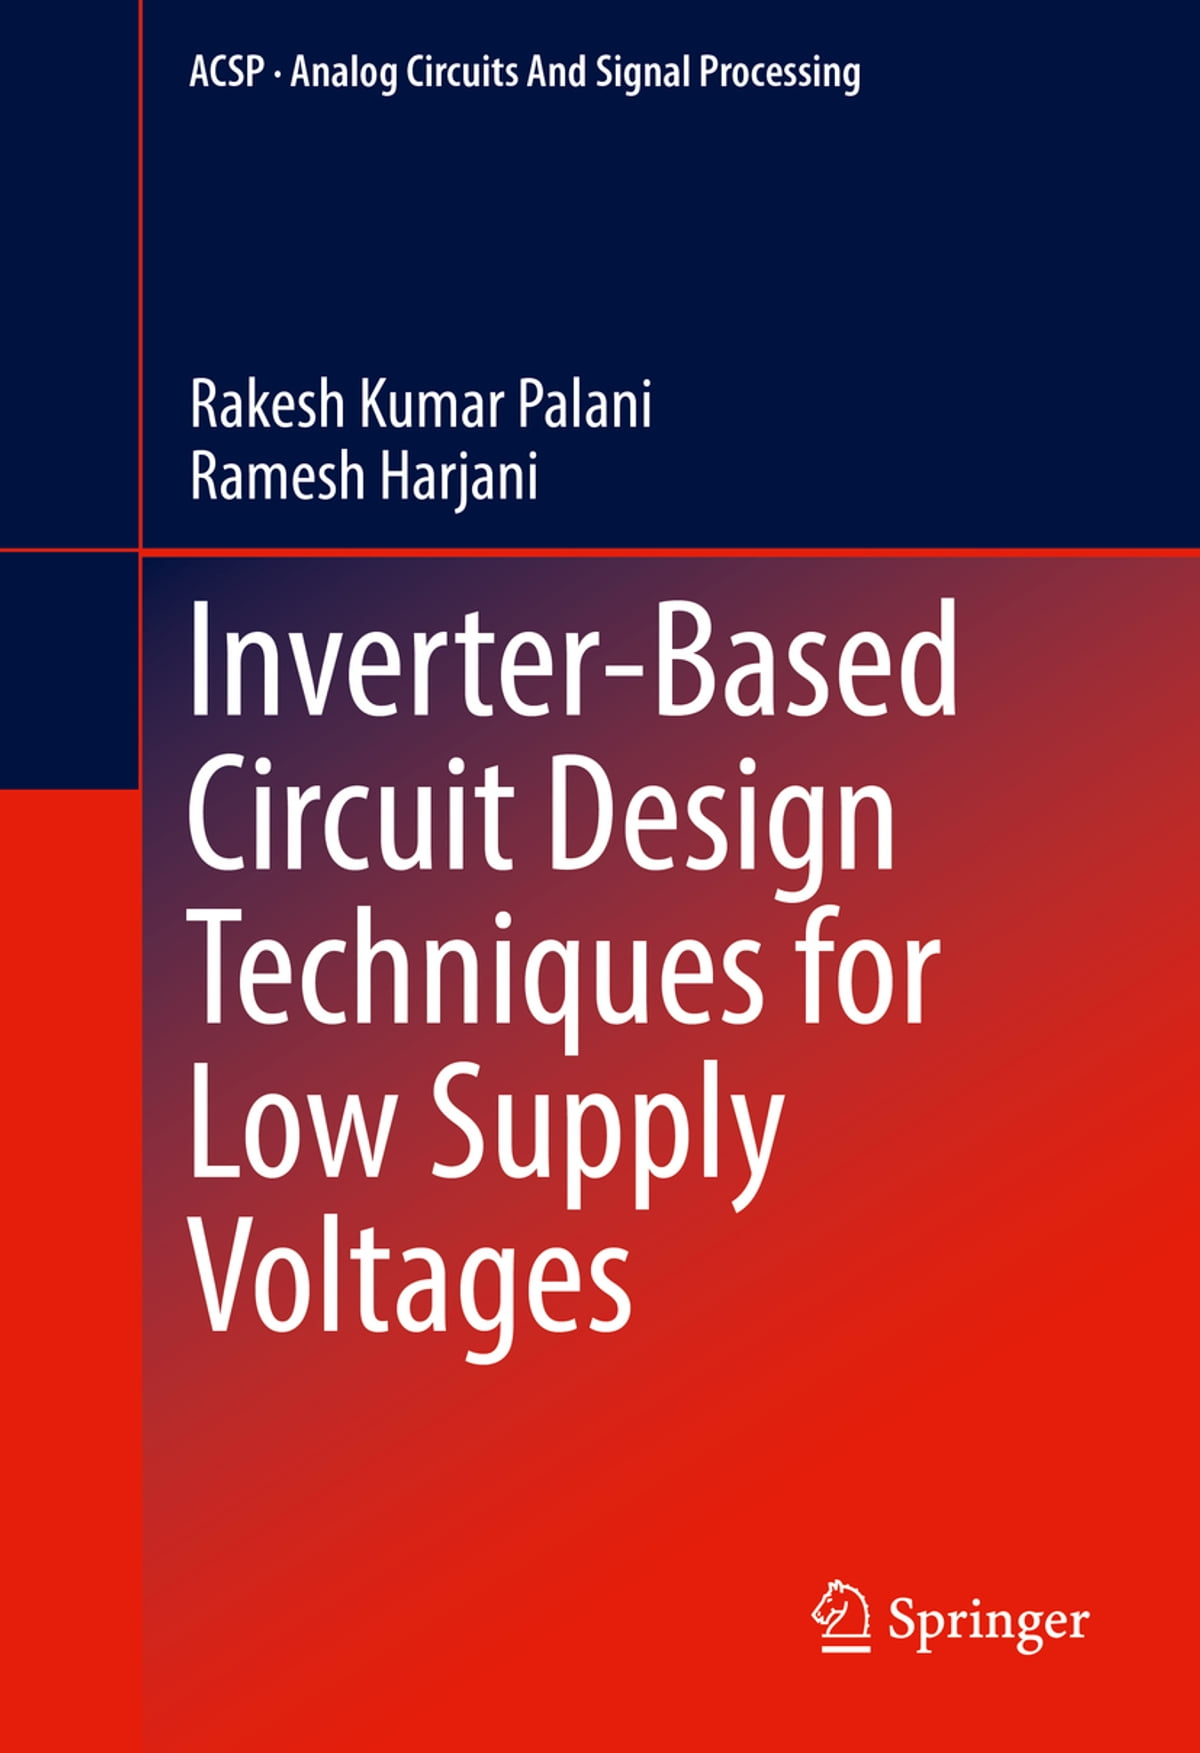 Inverter Based Circuit Design Techniques For Low Supply Voltages Ebook By Rakesh Kumar Palani 9783319466286 Rakuten Kobo